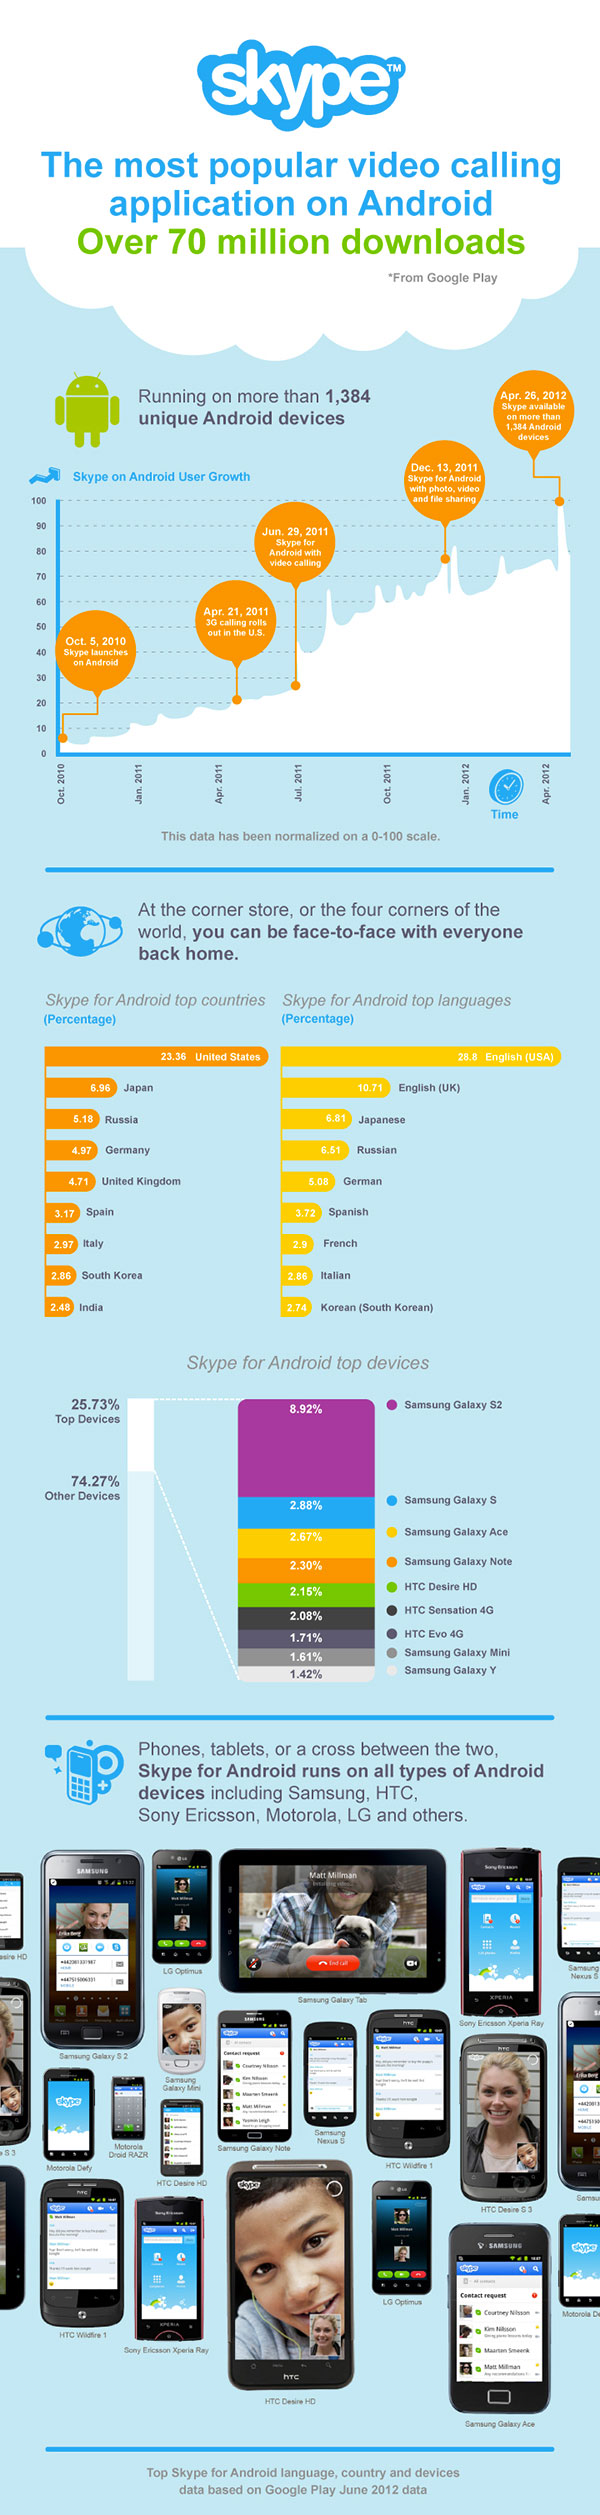 skype-infographie